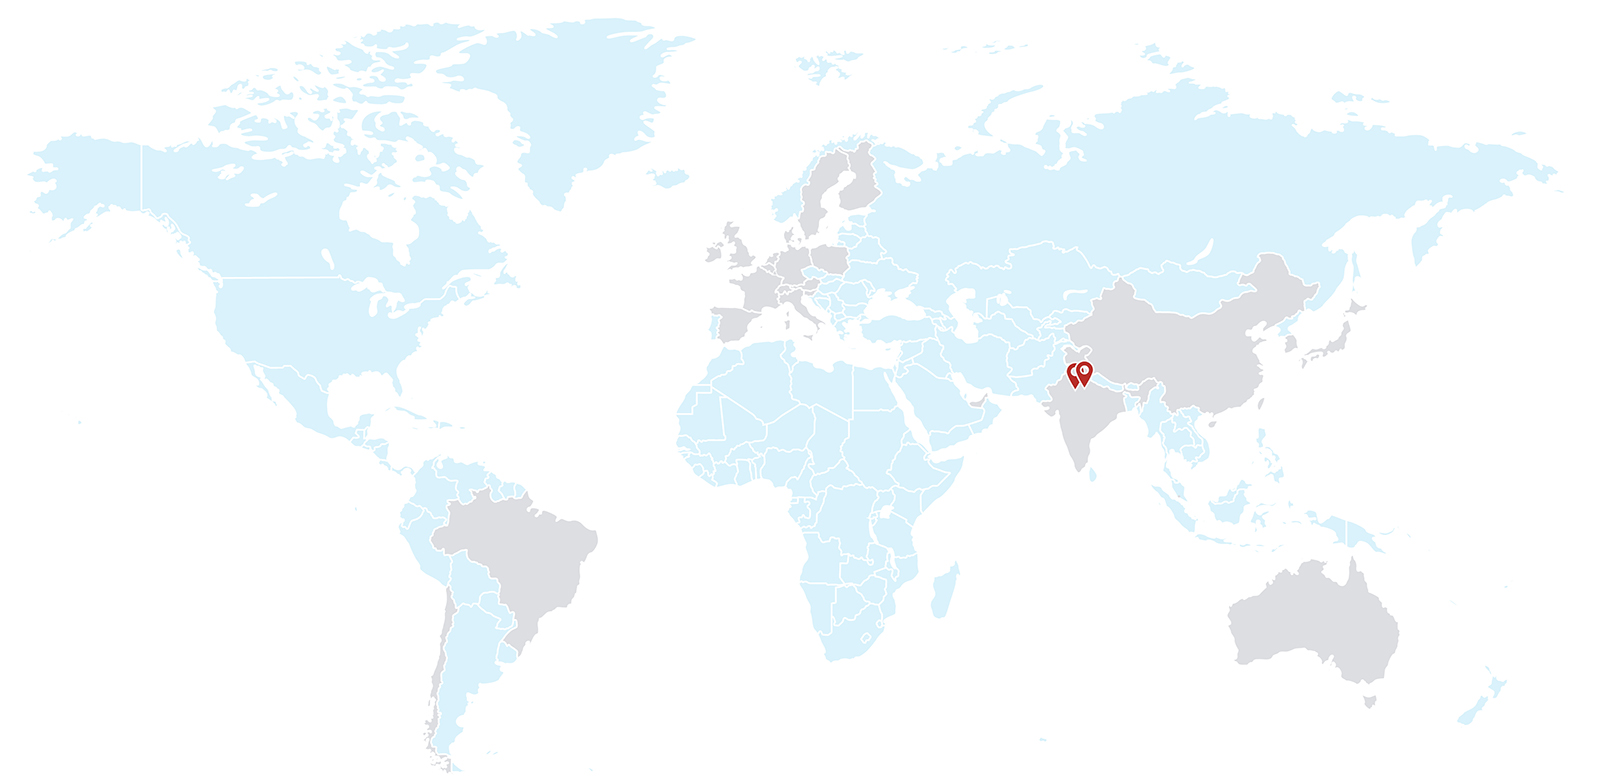 World Map - Fidelity International is present in 26 countries